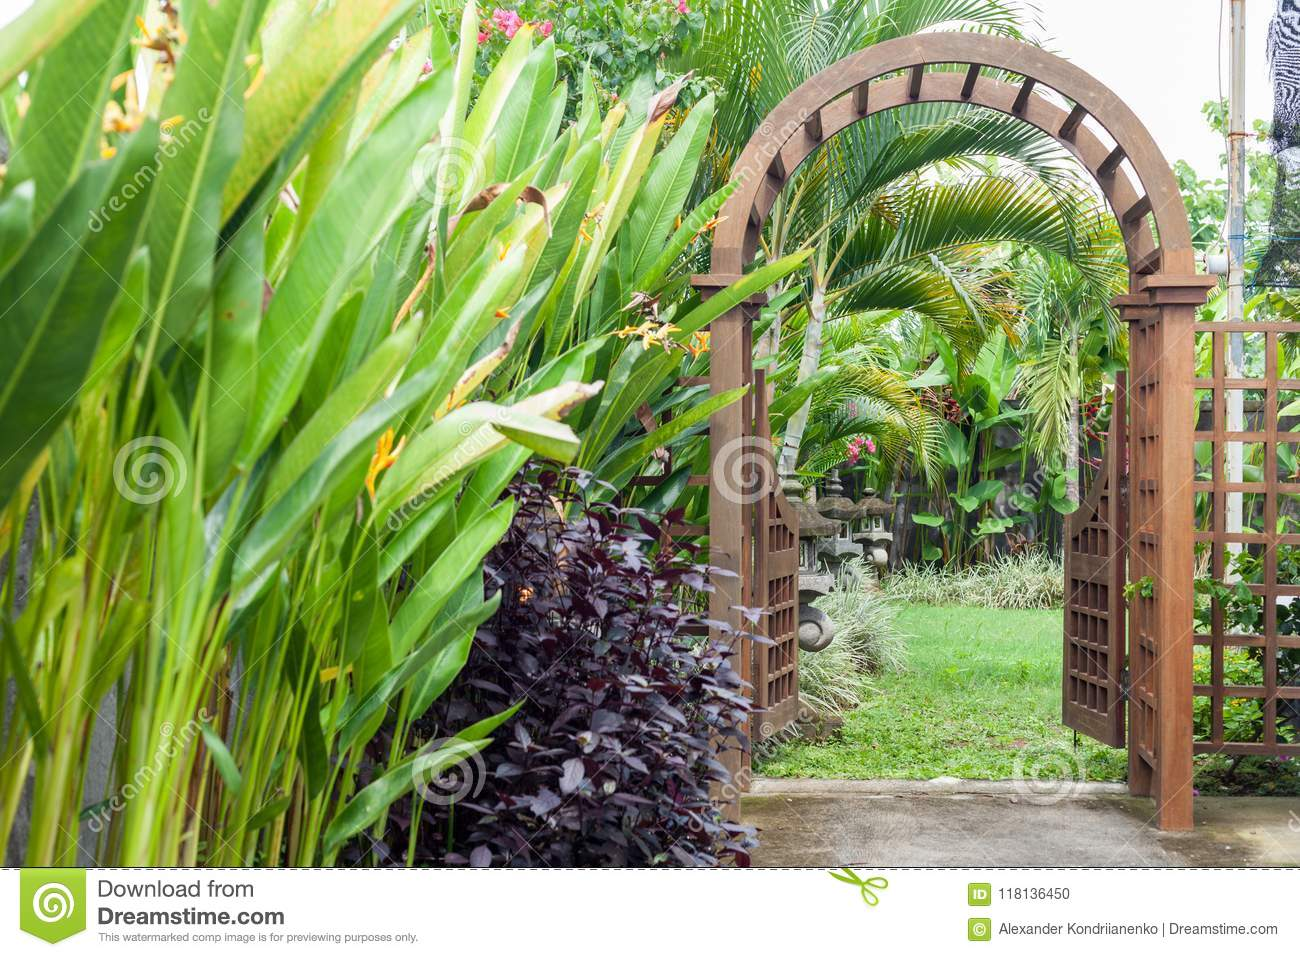 Download Wooden Arbor With Gate In Garden. Wooden Arched Entrance To The  Backyard. Stock